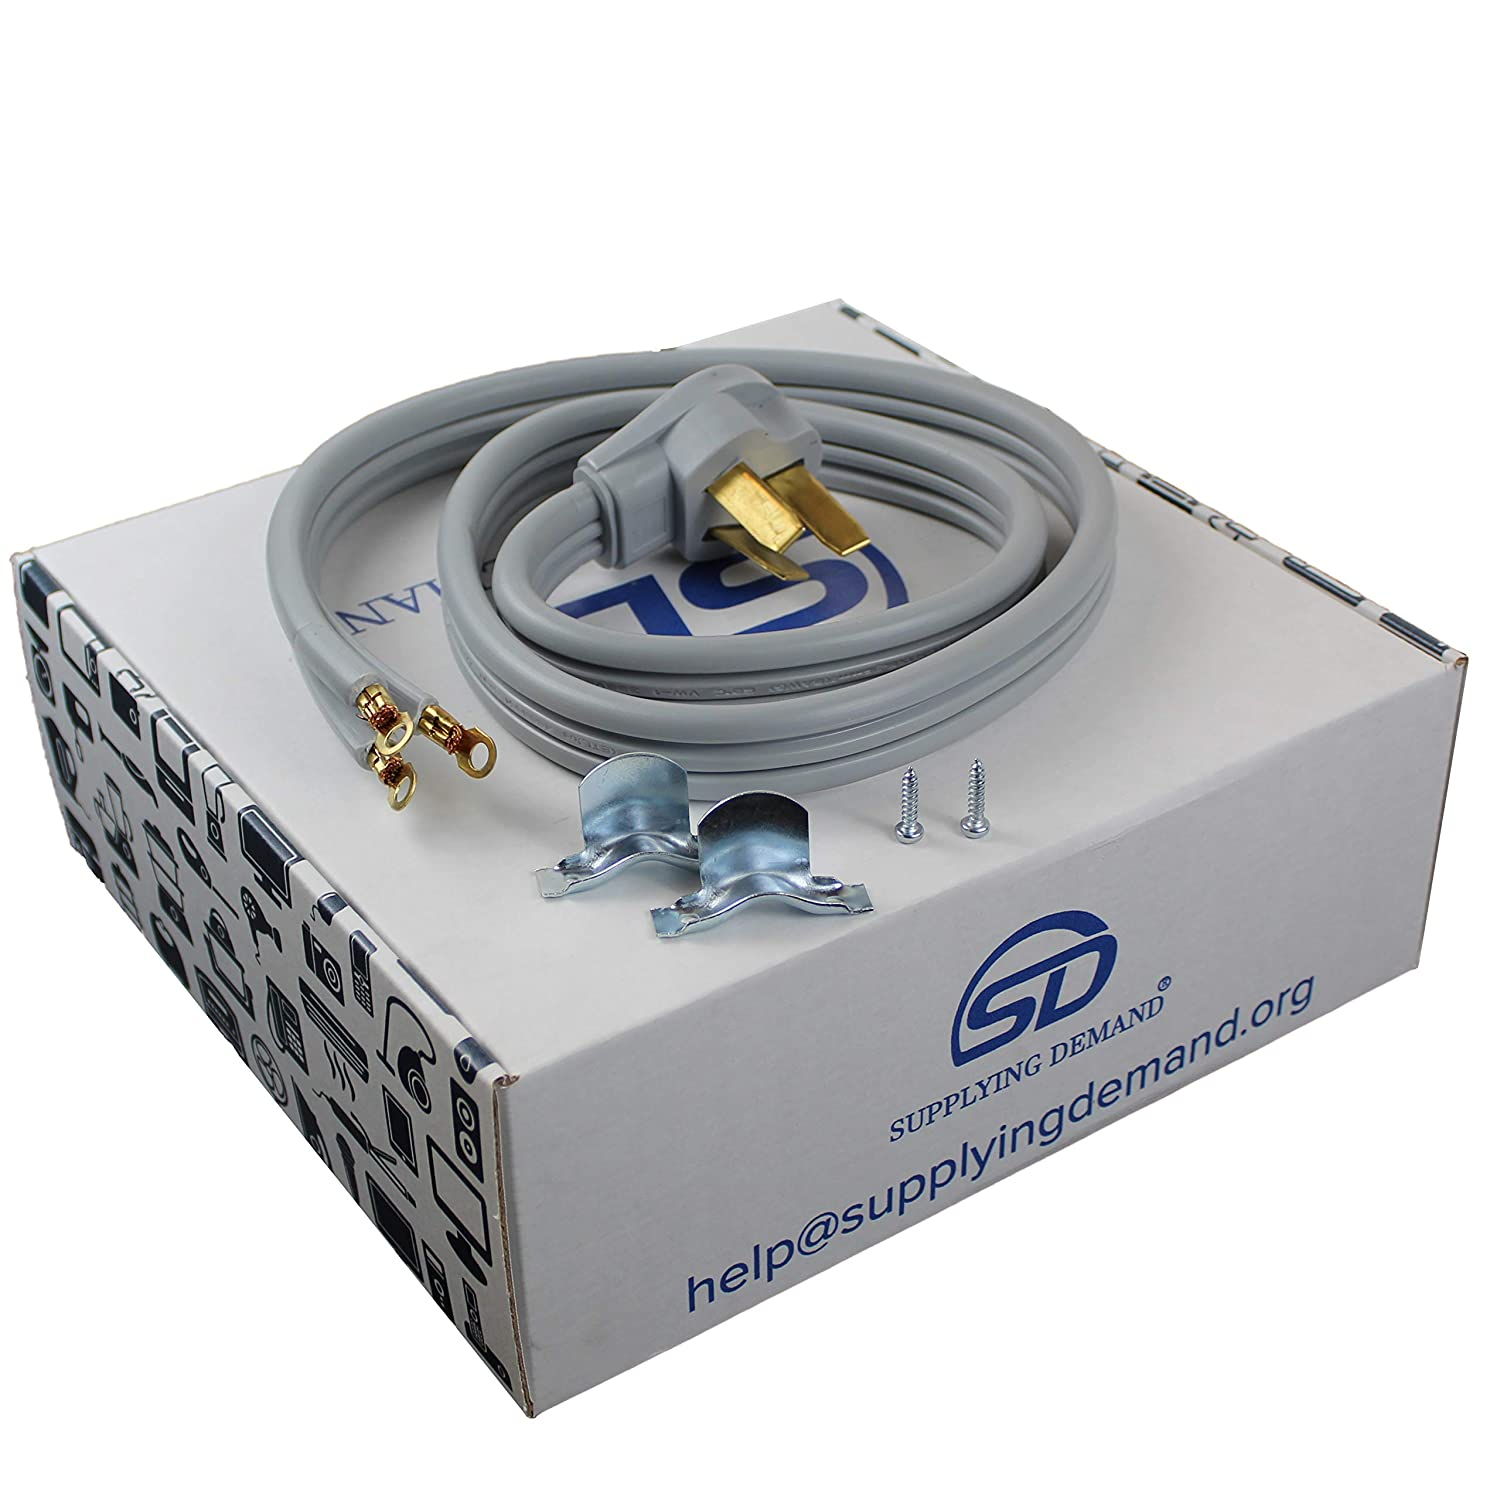 Samsung Supplying Demand 3 Wire Range Oven Cord 50-AMP 250 Volts 8 AWG Wire Compatible With GE 5 Foot LG Frigidaire Whirlpool